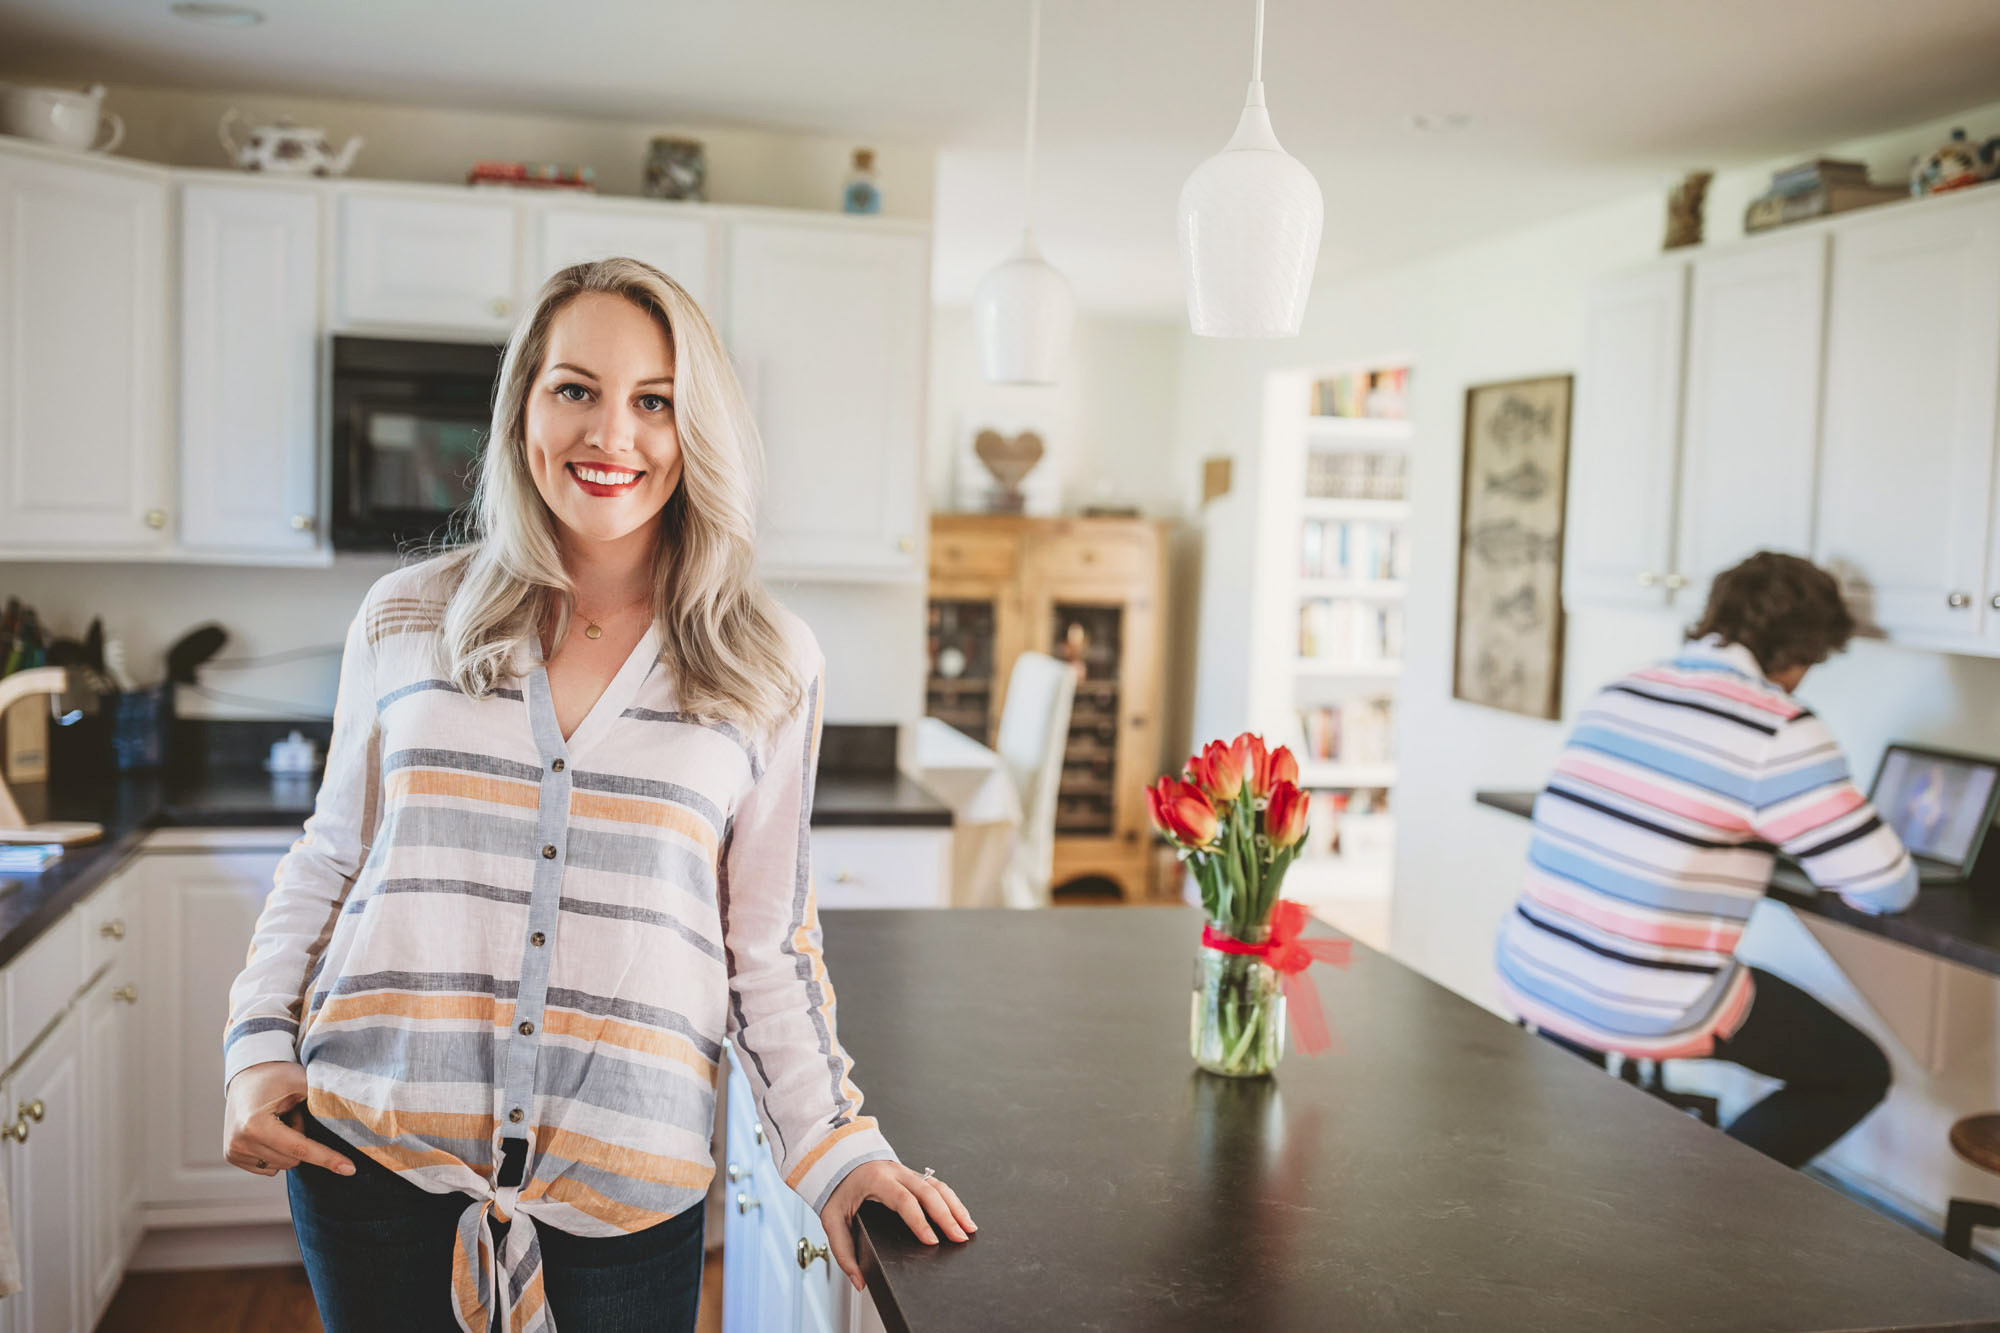 Rebecca Atkins poses in her New London home while her foster son looks over schoolwork on his computer in the background.